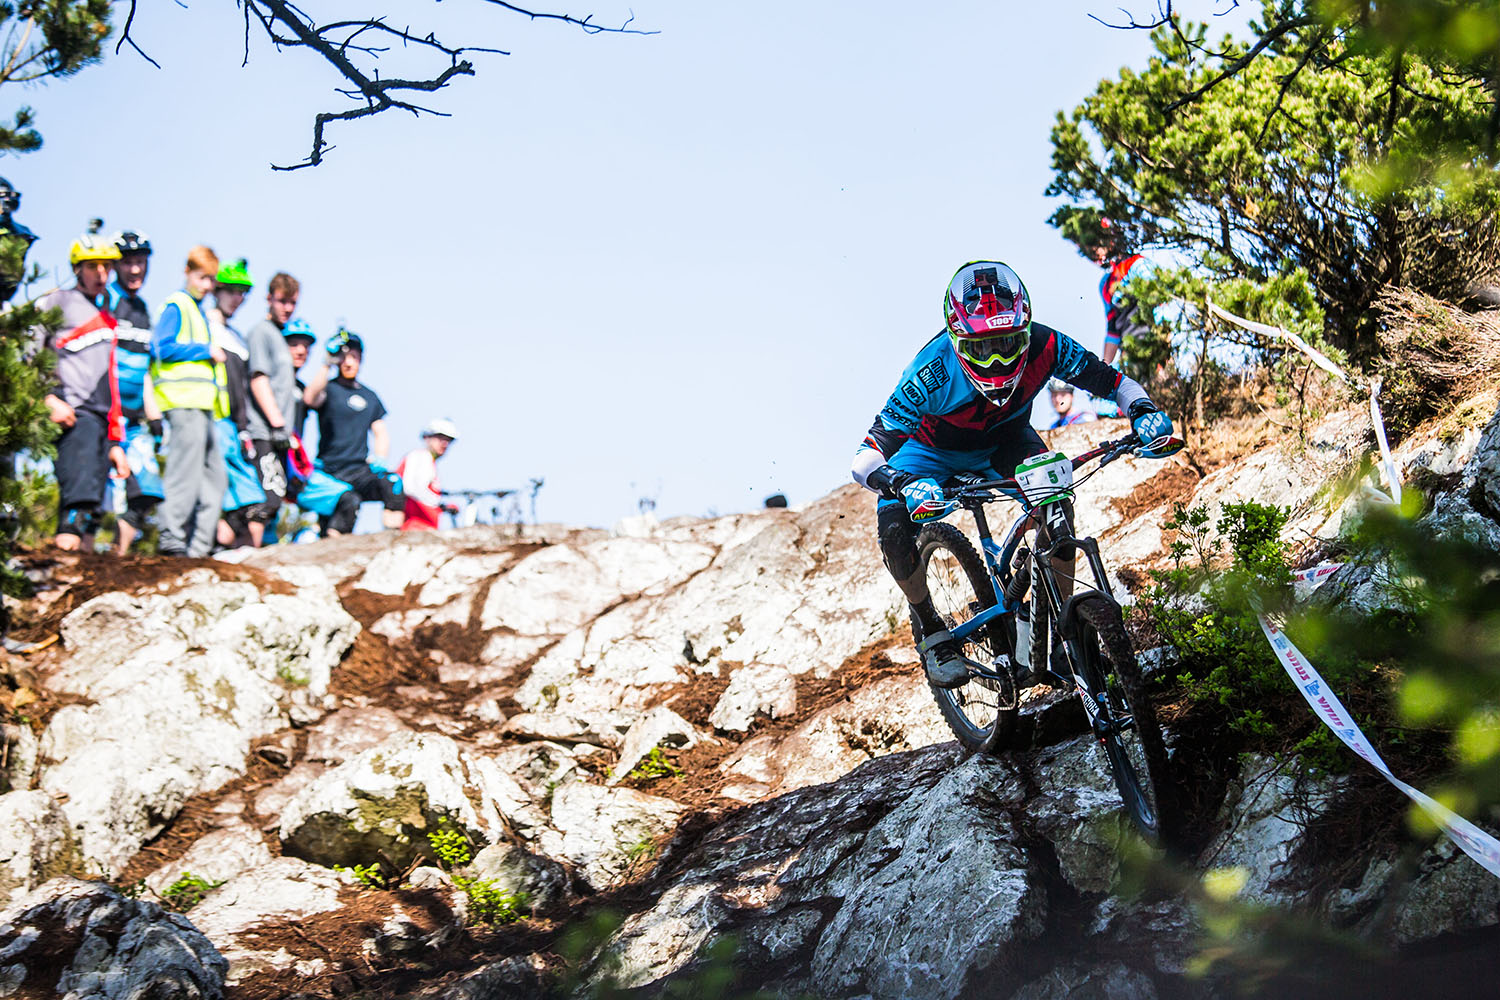 Nico showing us how it is done during practice on stage 3. Photo: Lapierre- Jeremy Reuiller